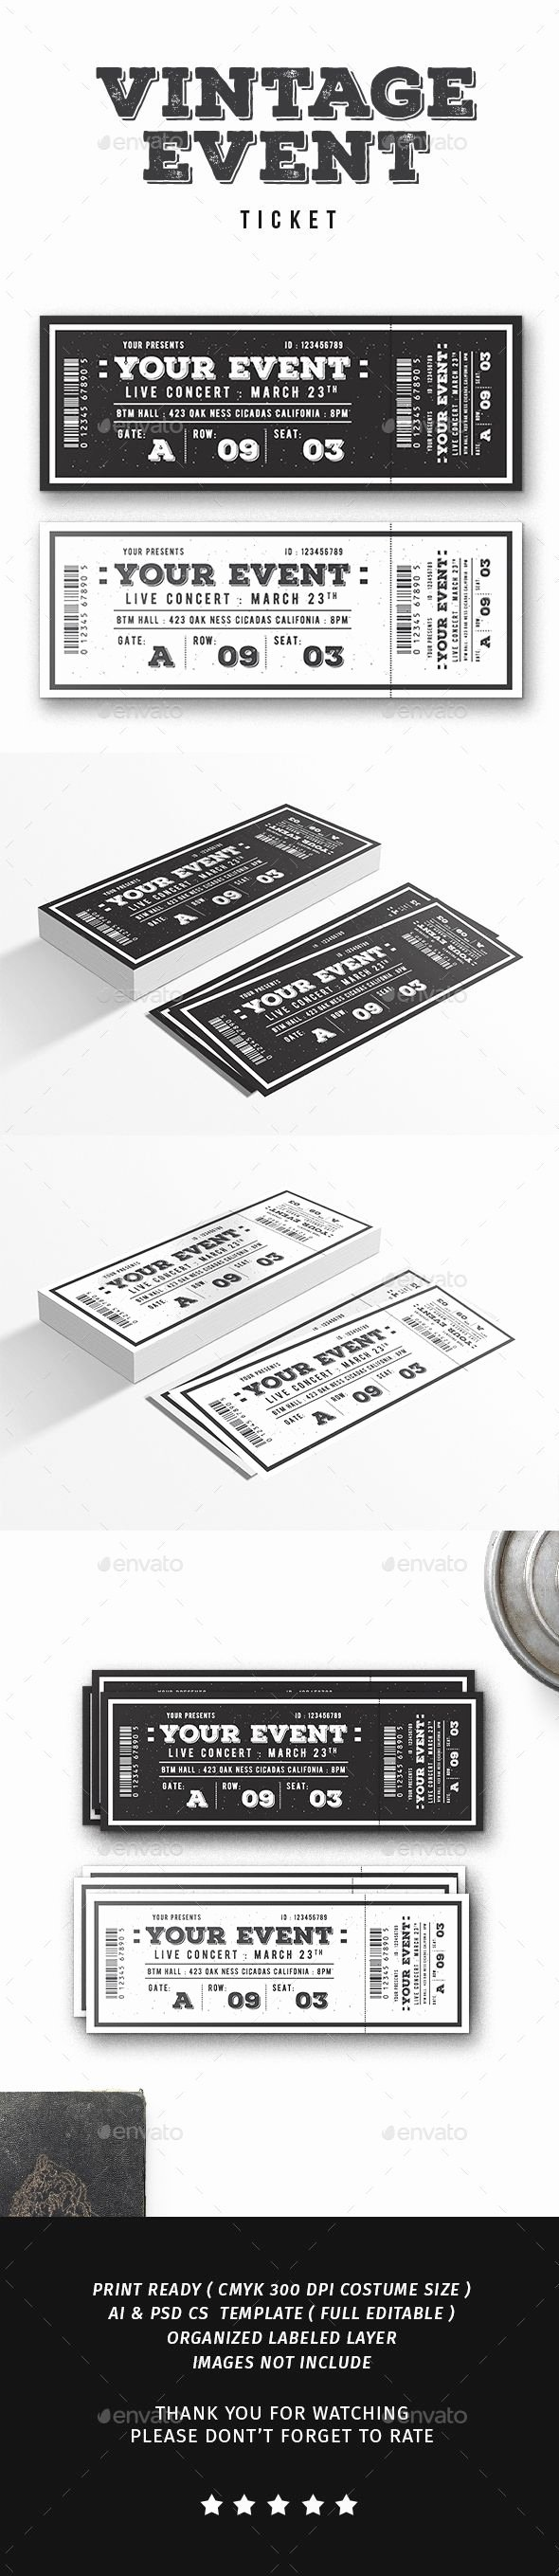 Event Ticket Template Photoshop Awesome 25 Best Ideas About event Ticket Template On Pinterest